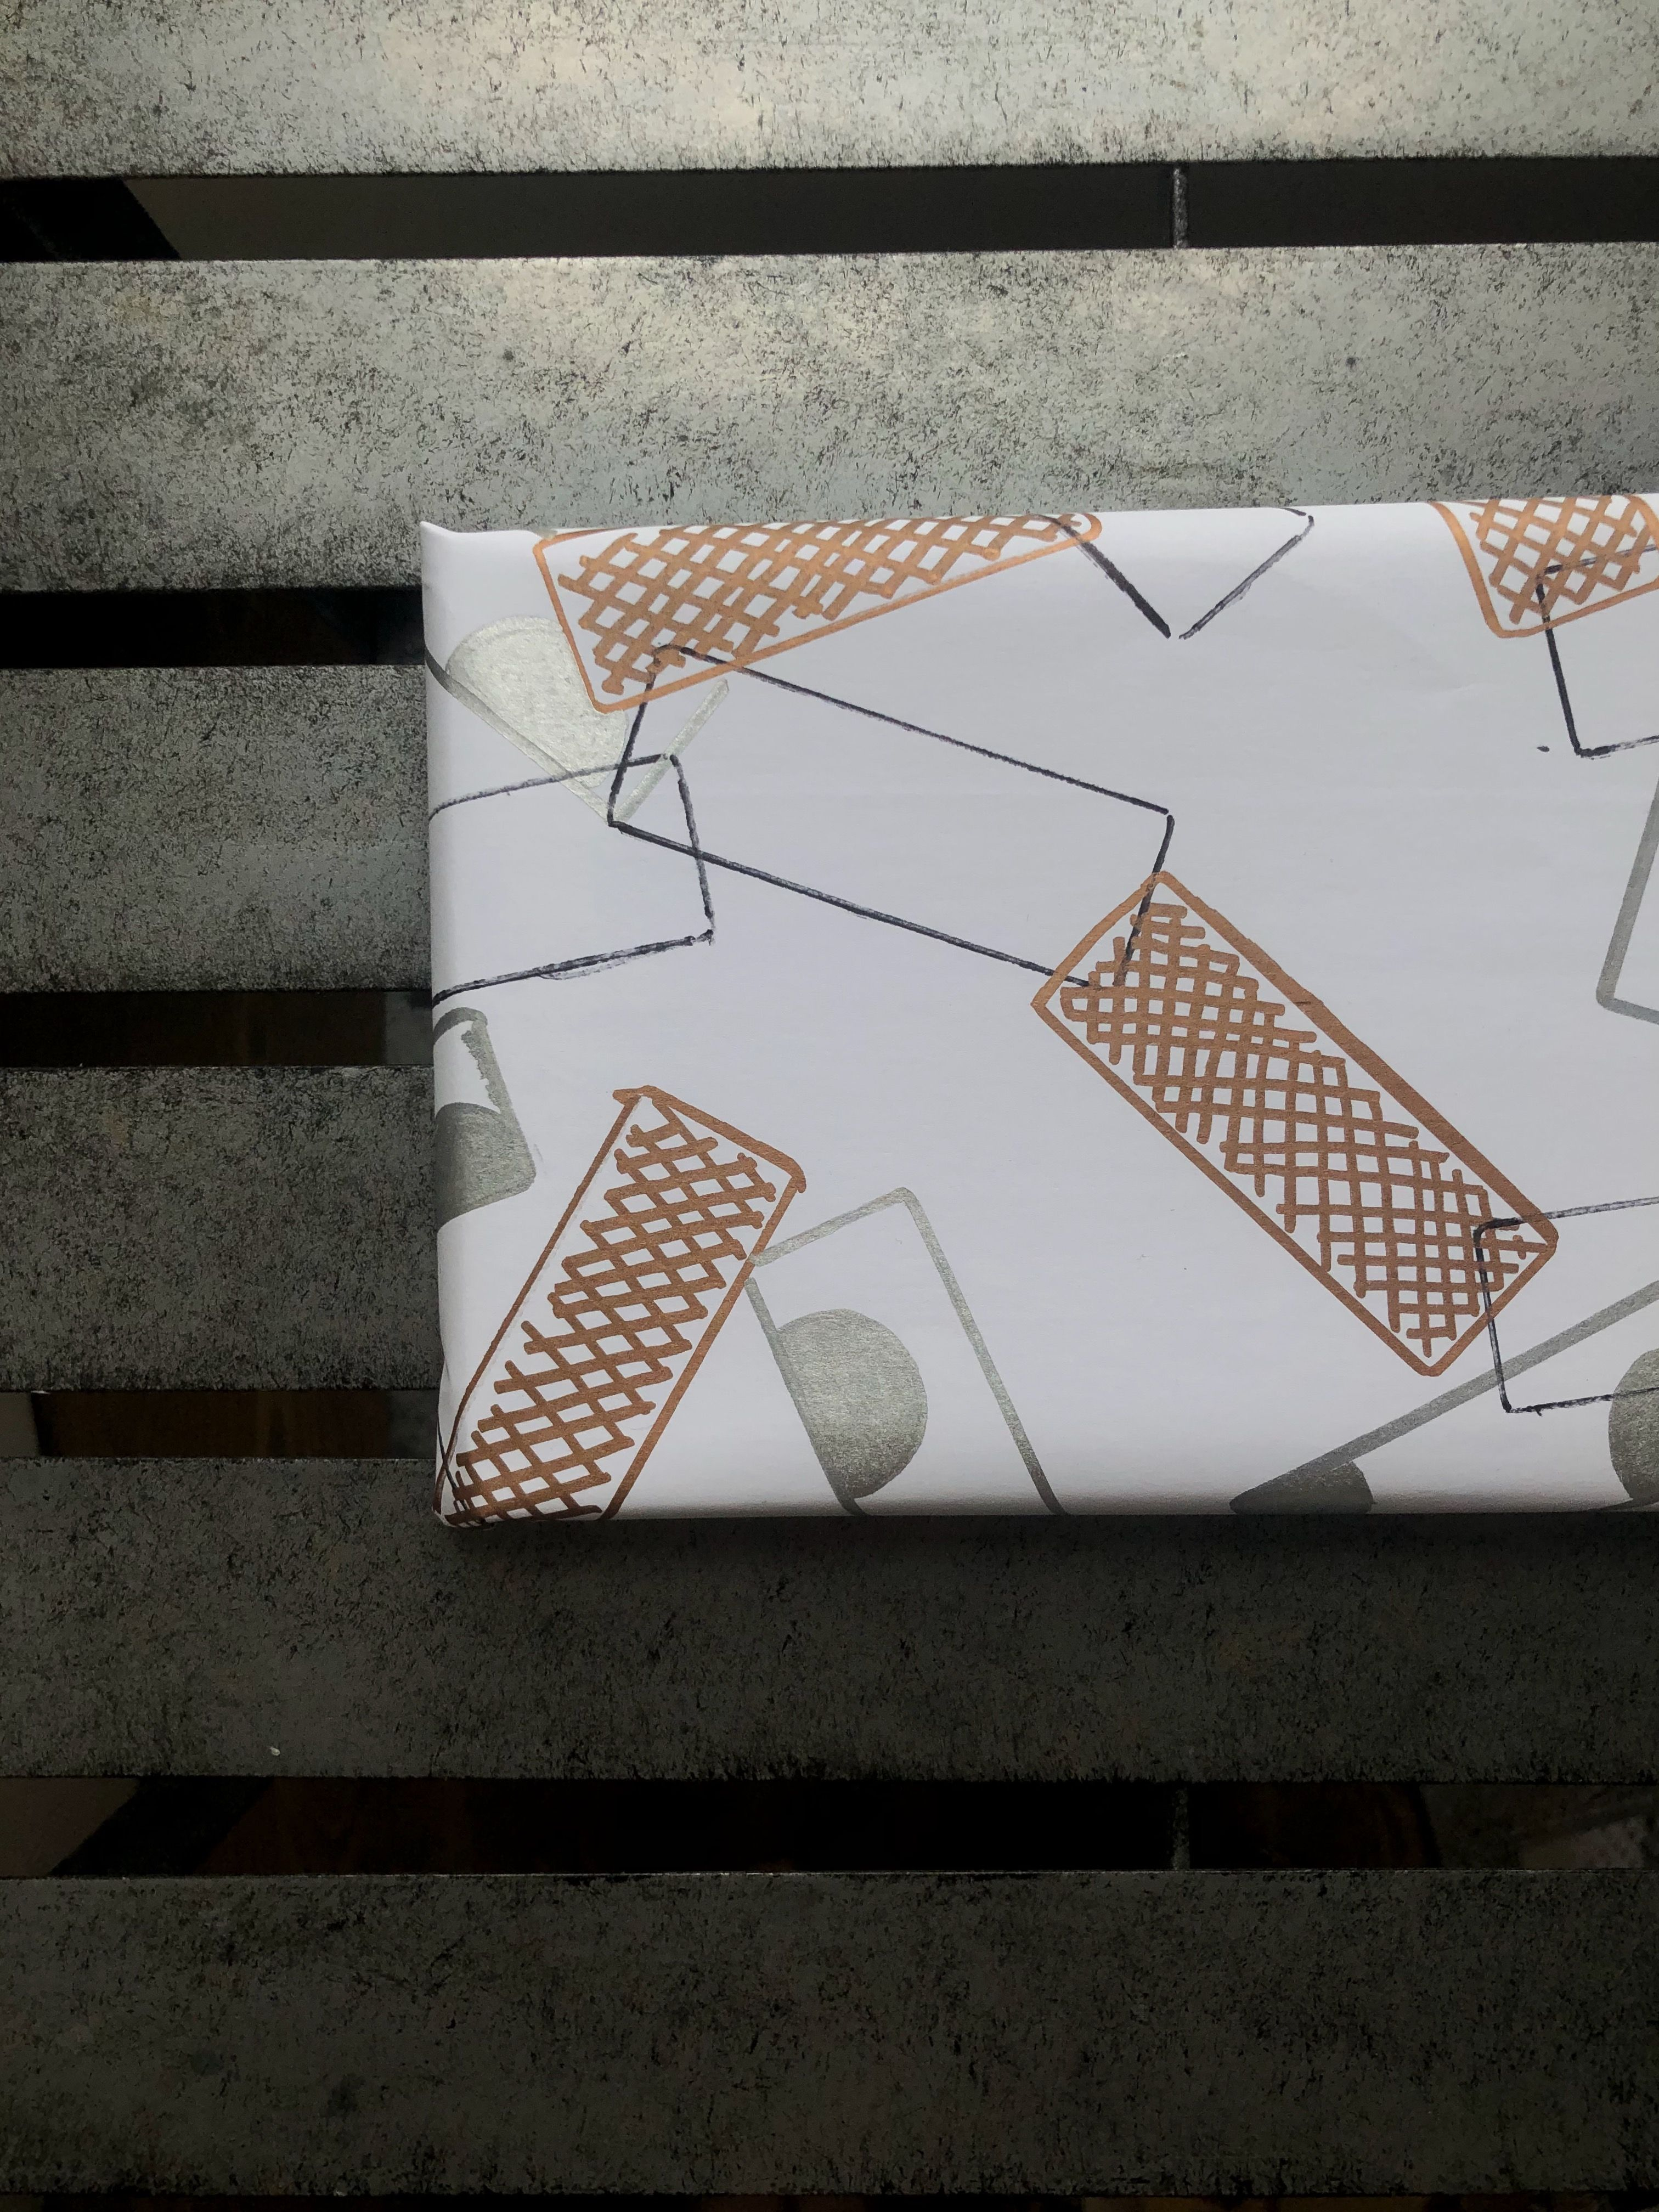 Use custom illustrations to make your own wrapping paper